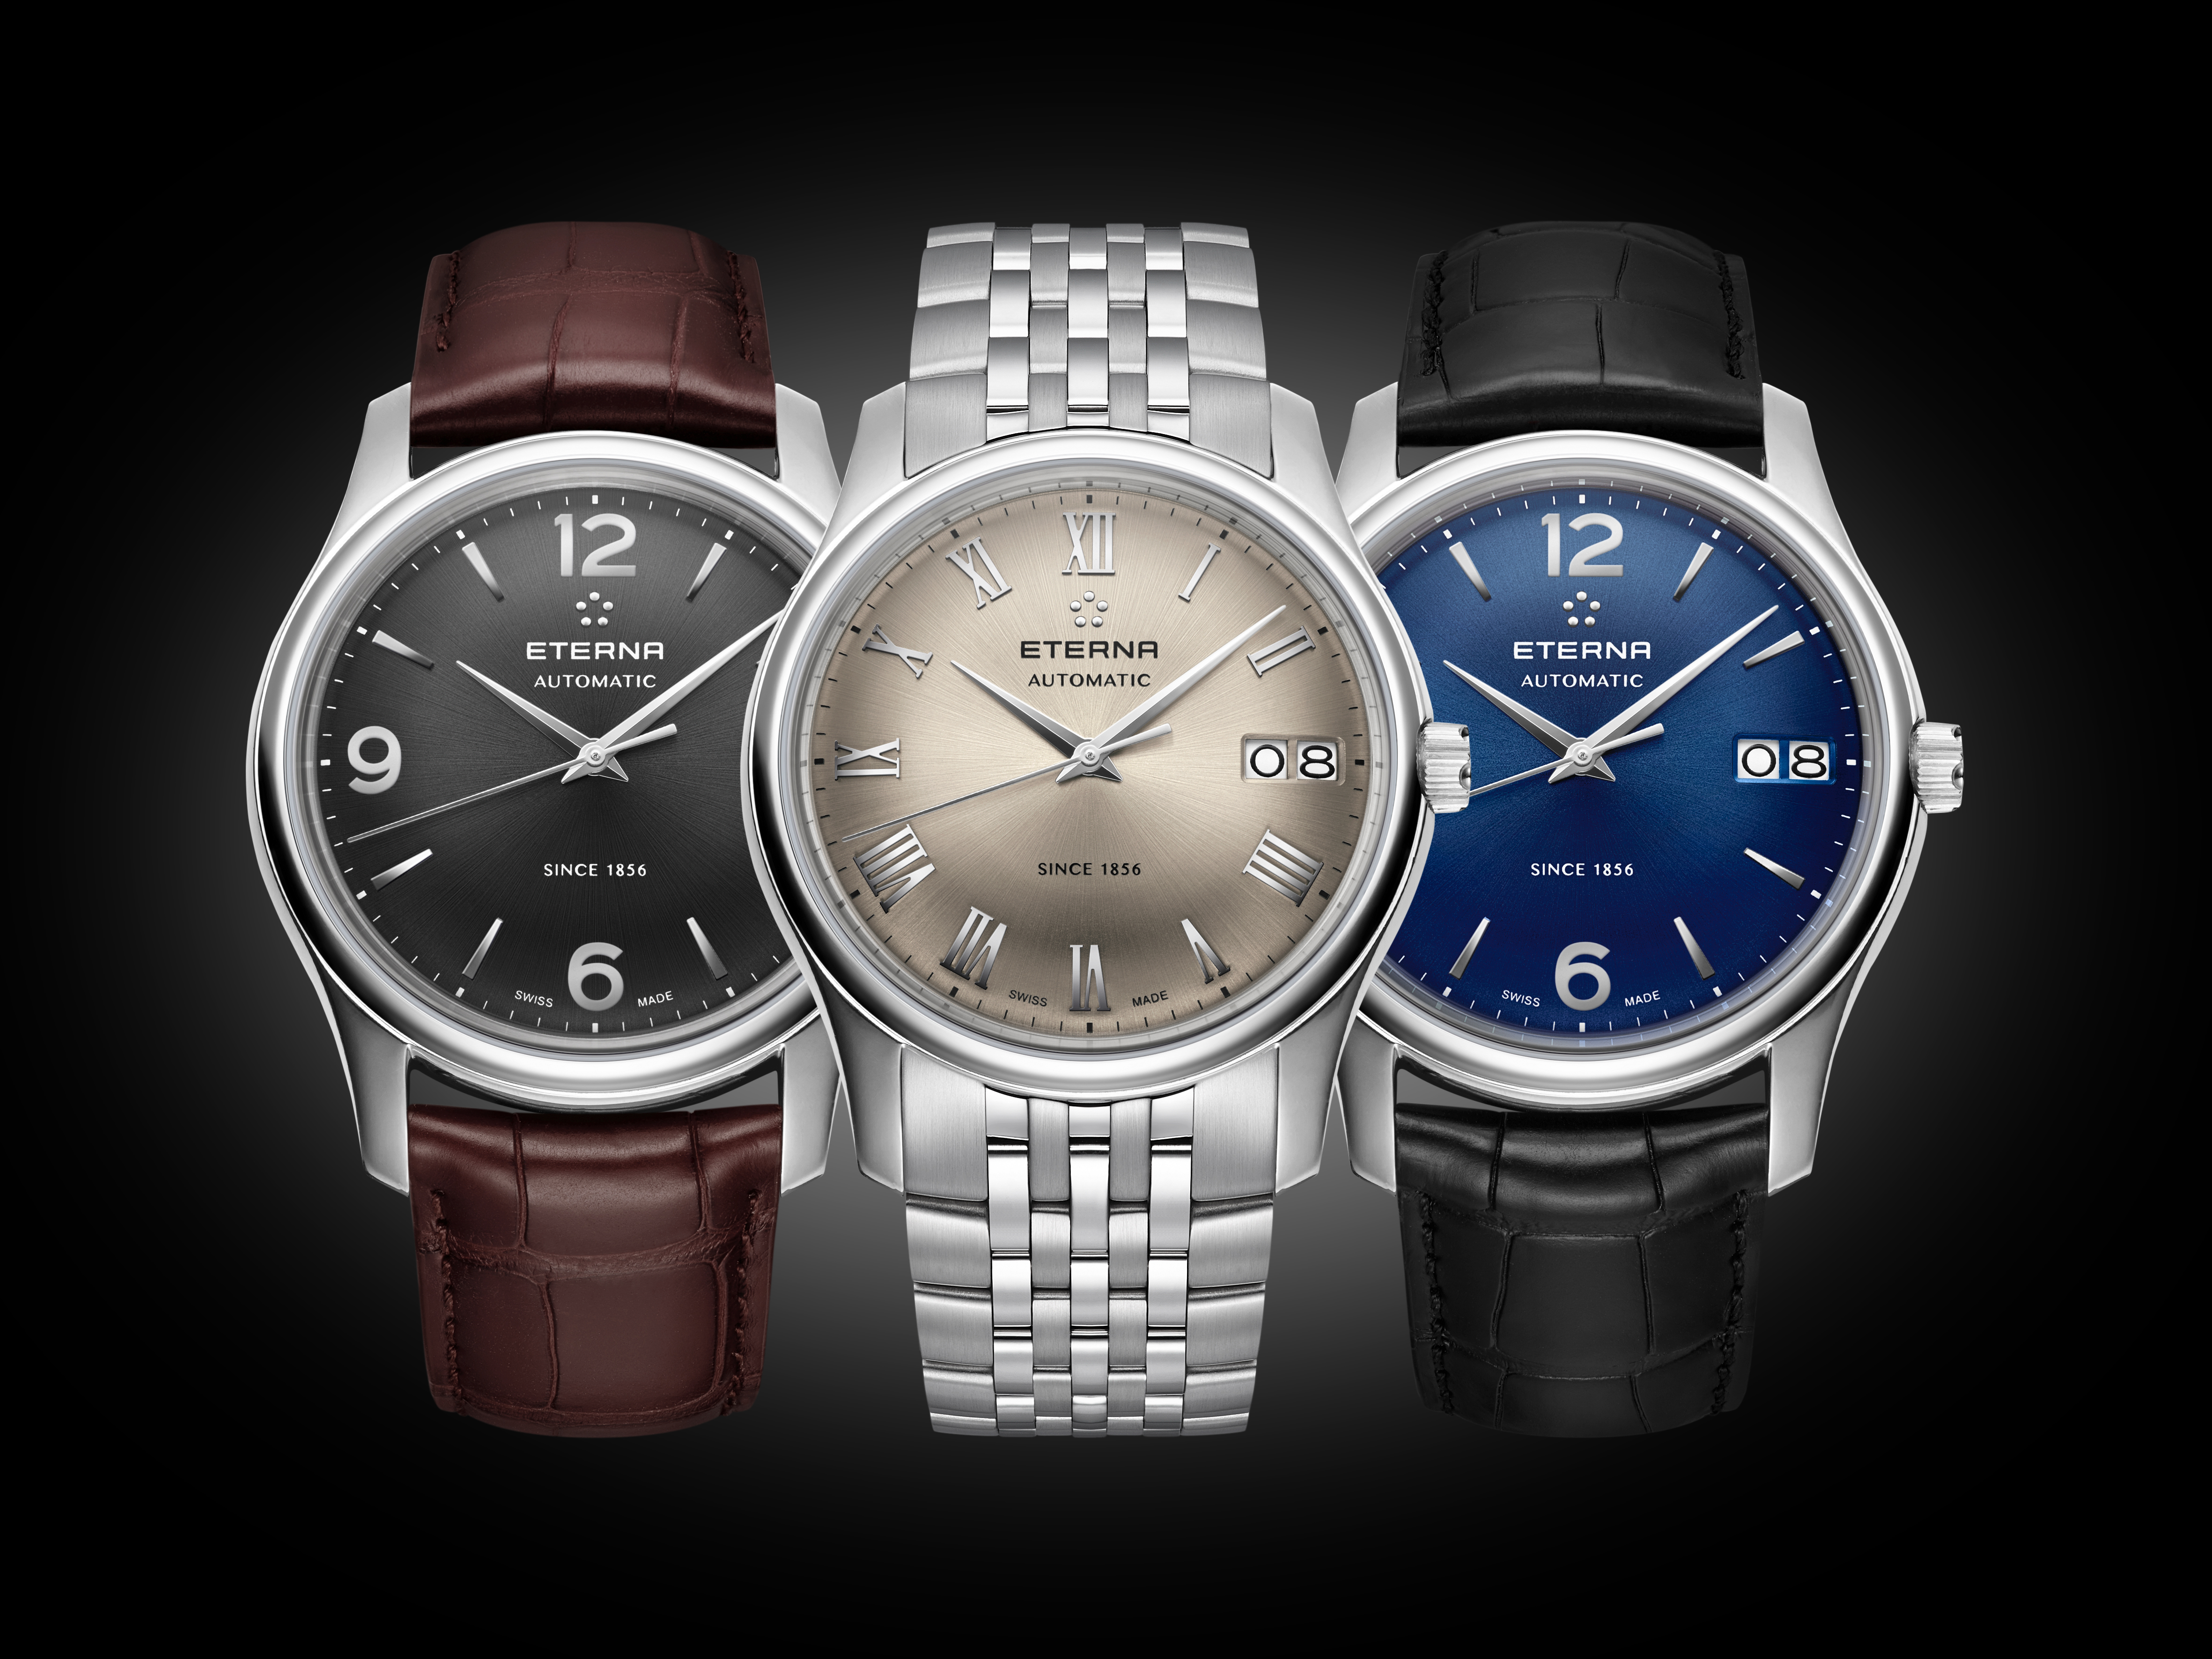 http://www.watchtime.pl/magazyn/wp-content/uploads/2016/12/Eterna_TheGranges_Trio.jpg